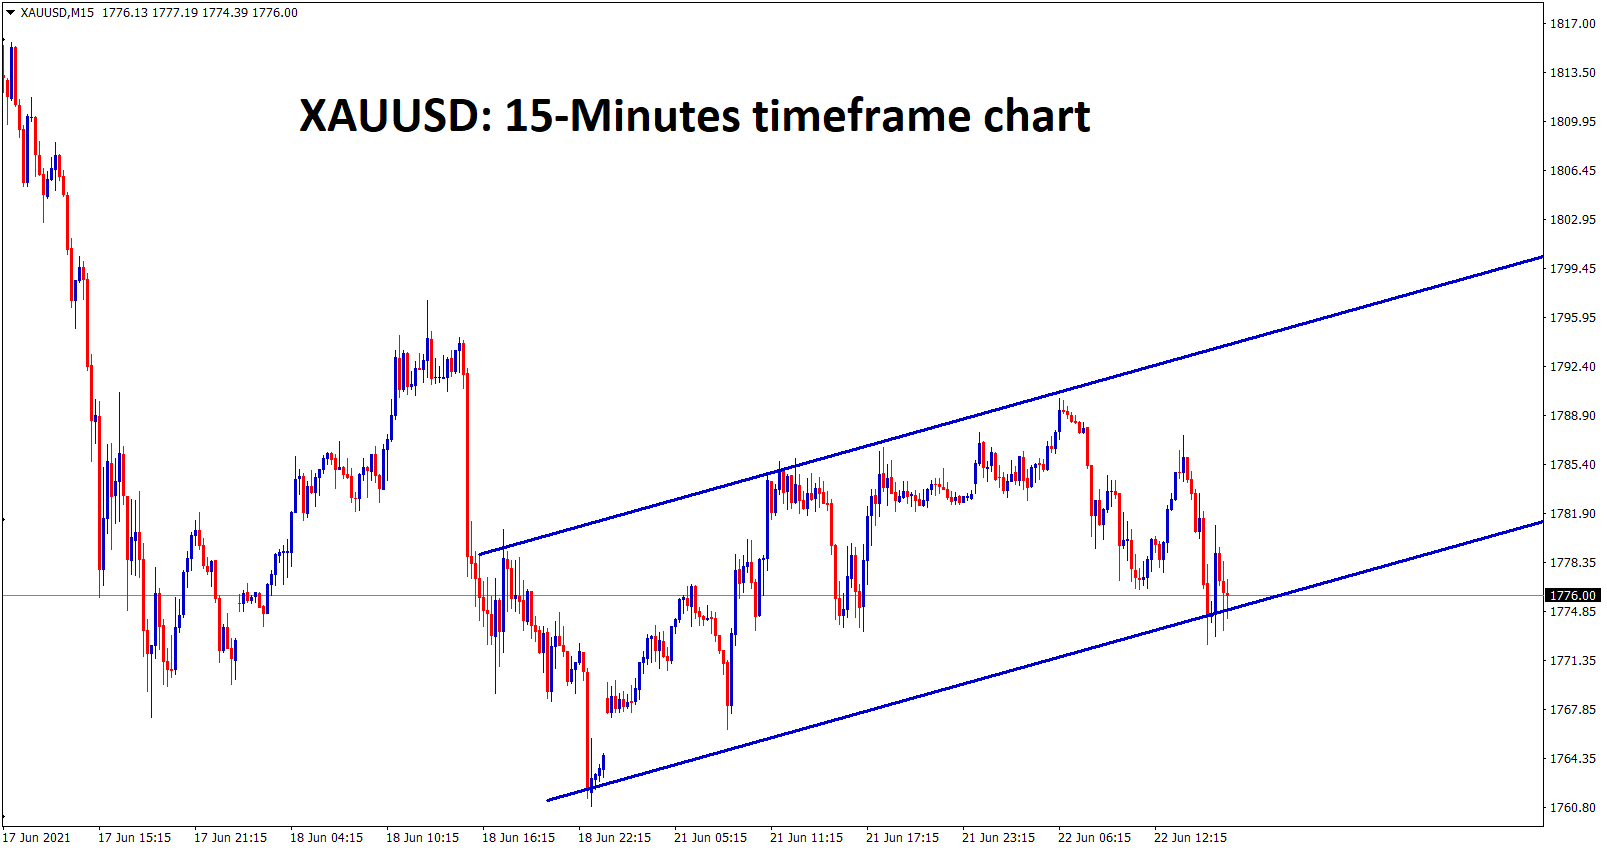 Gold is moving in a small Ascending channel